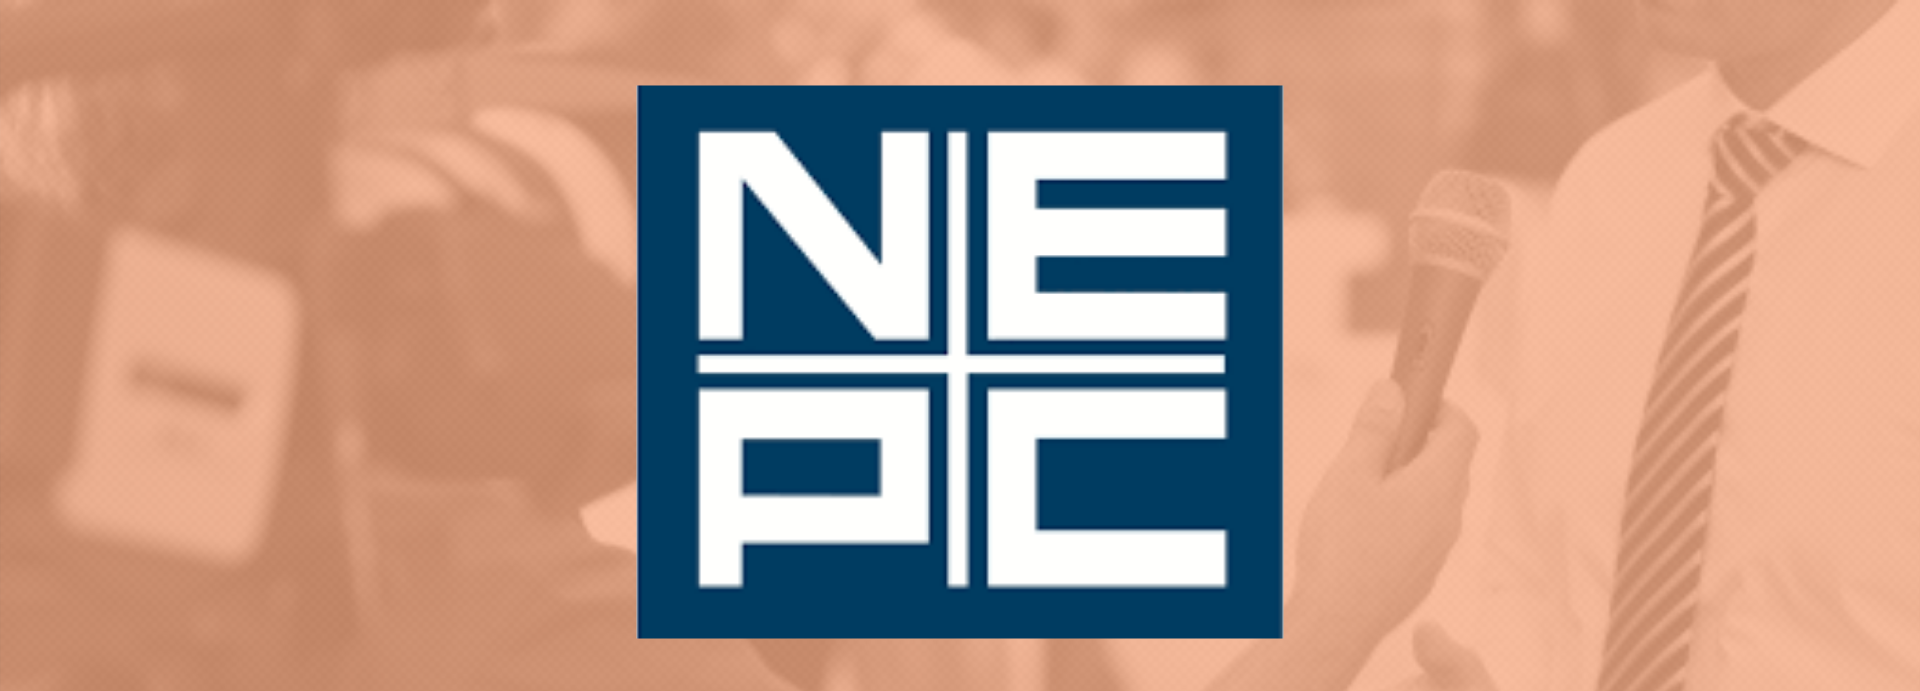 Defined, Goal-Oriented Approach Key To Sustainable Diversity: NEPC